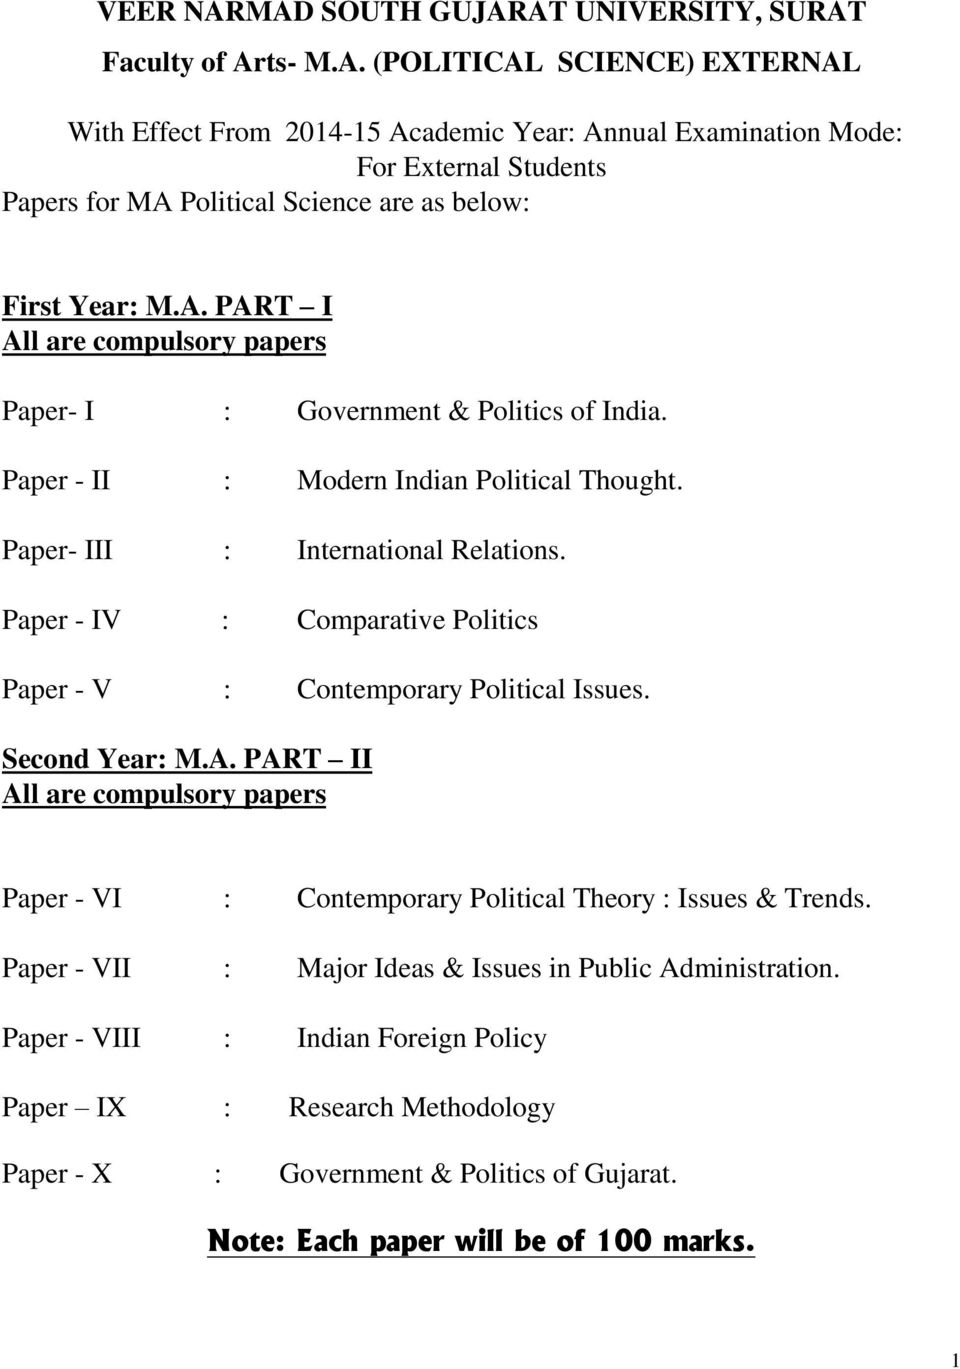 Paper - IV : Comparative Politics Paper - V : Contemporary Political Issues. Second Year: M.A. PART II All are compulsory papers Paper - VI : Contemporary Political Theory : Issues & Trends.